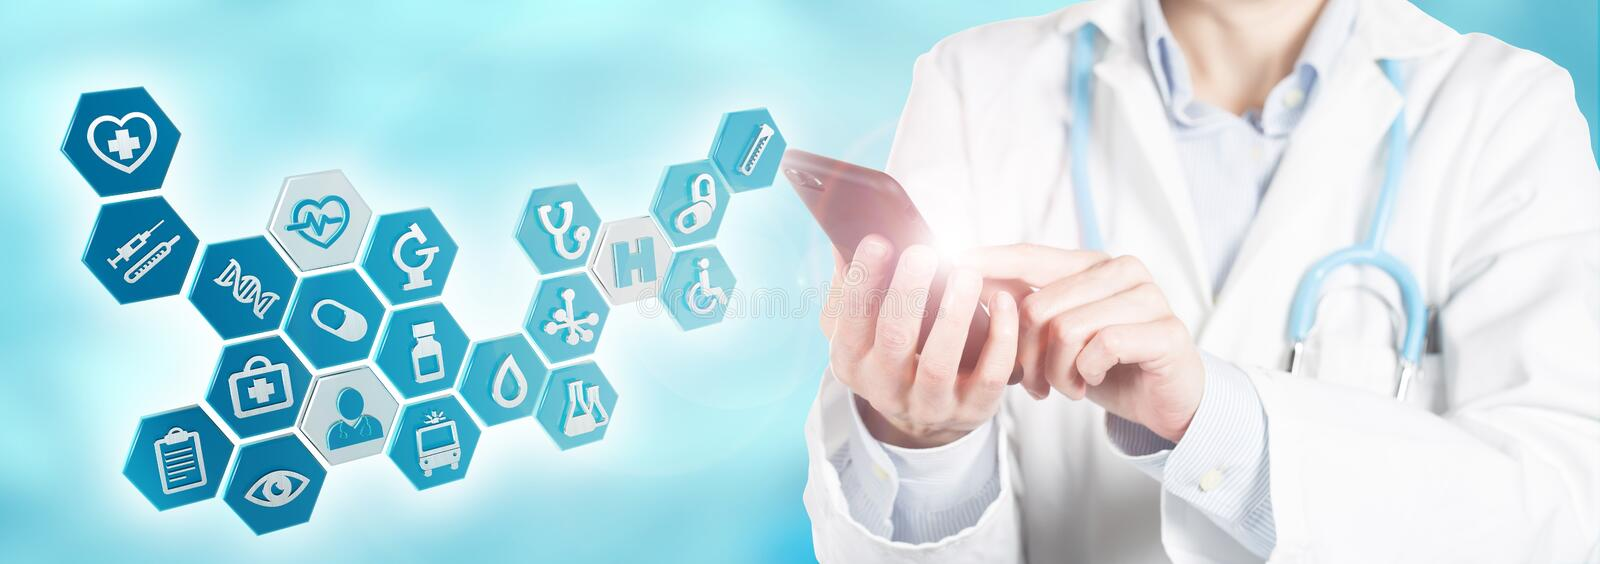 Concept of modern health care stock photo